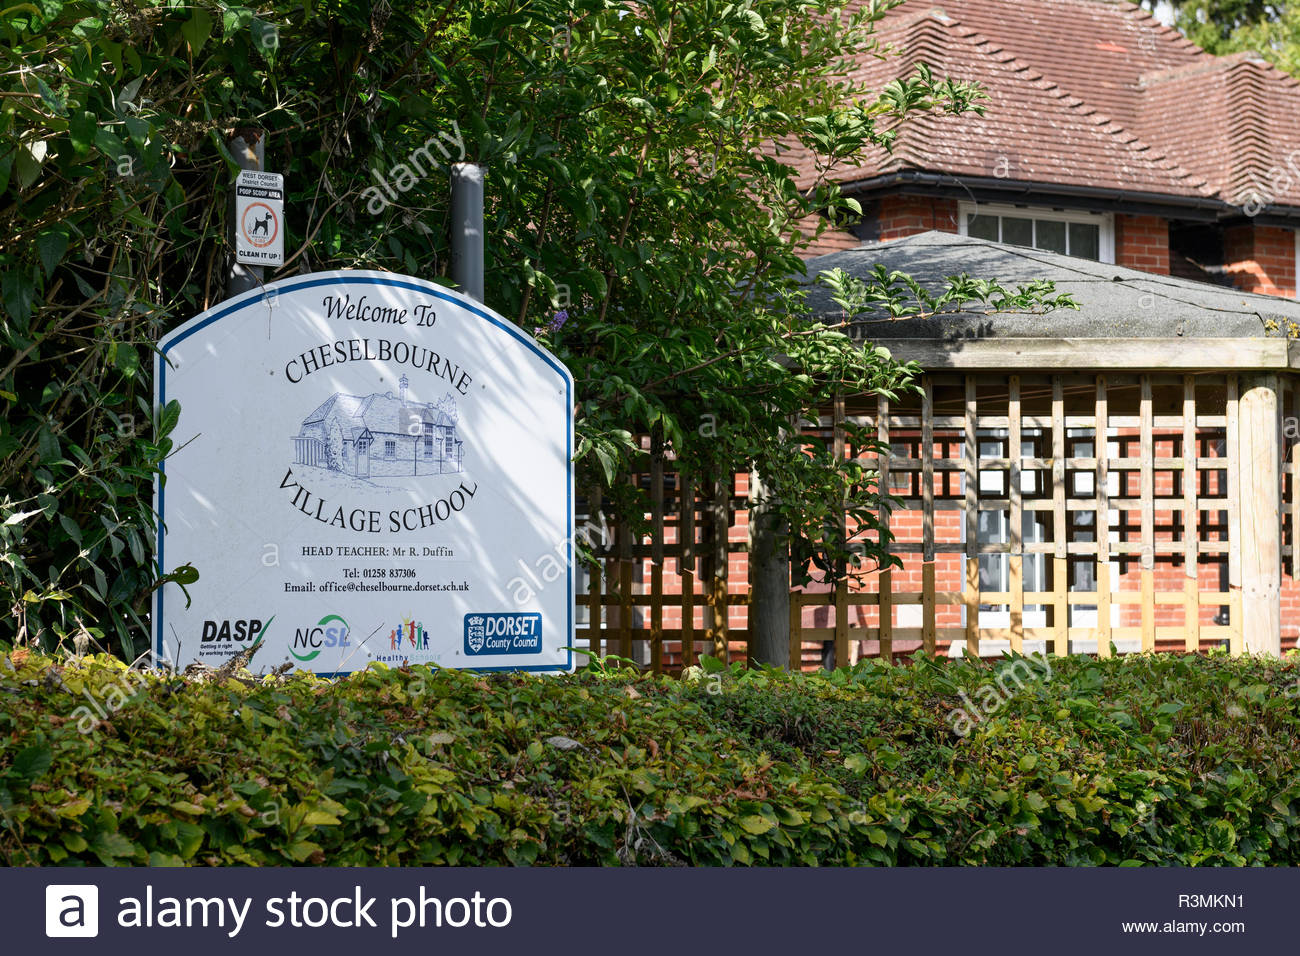 Cheselbourne Village School sign, Cheselbourne, Dorset, England, Britain, Europe UK GB - Stock Image